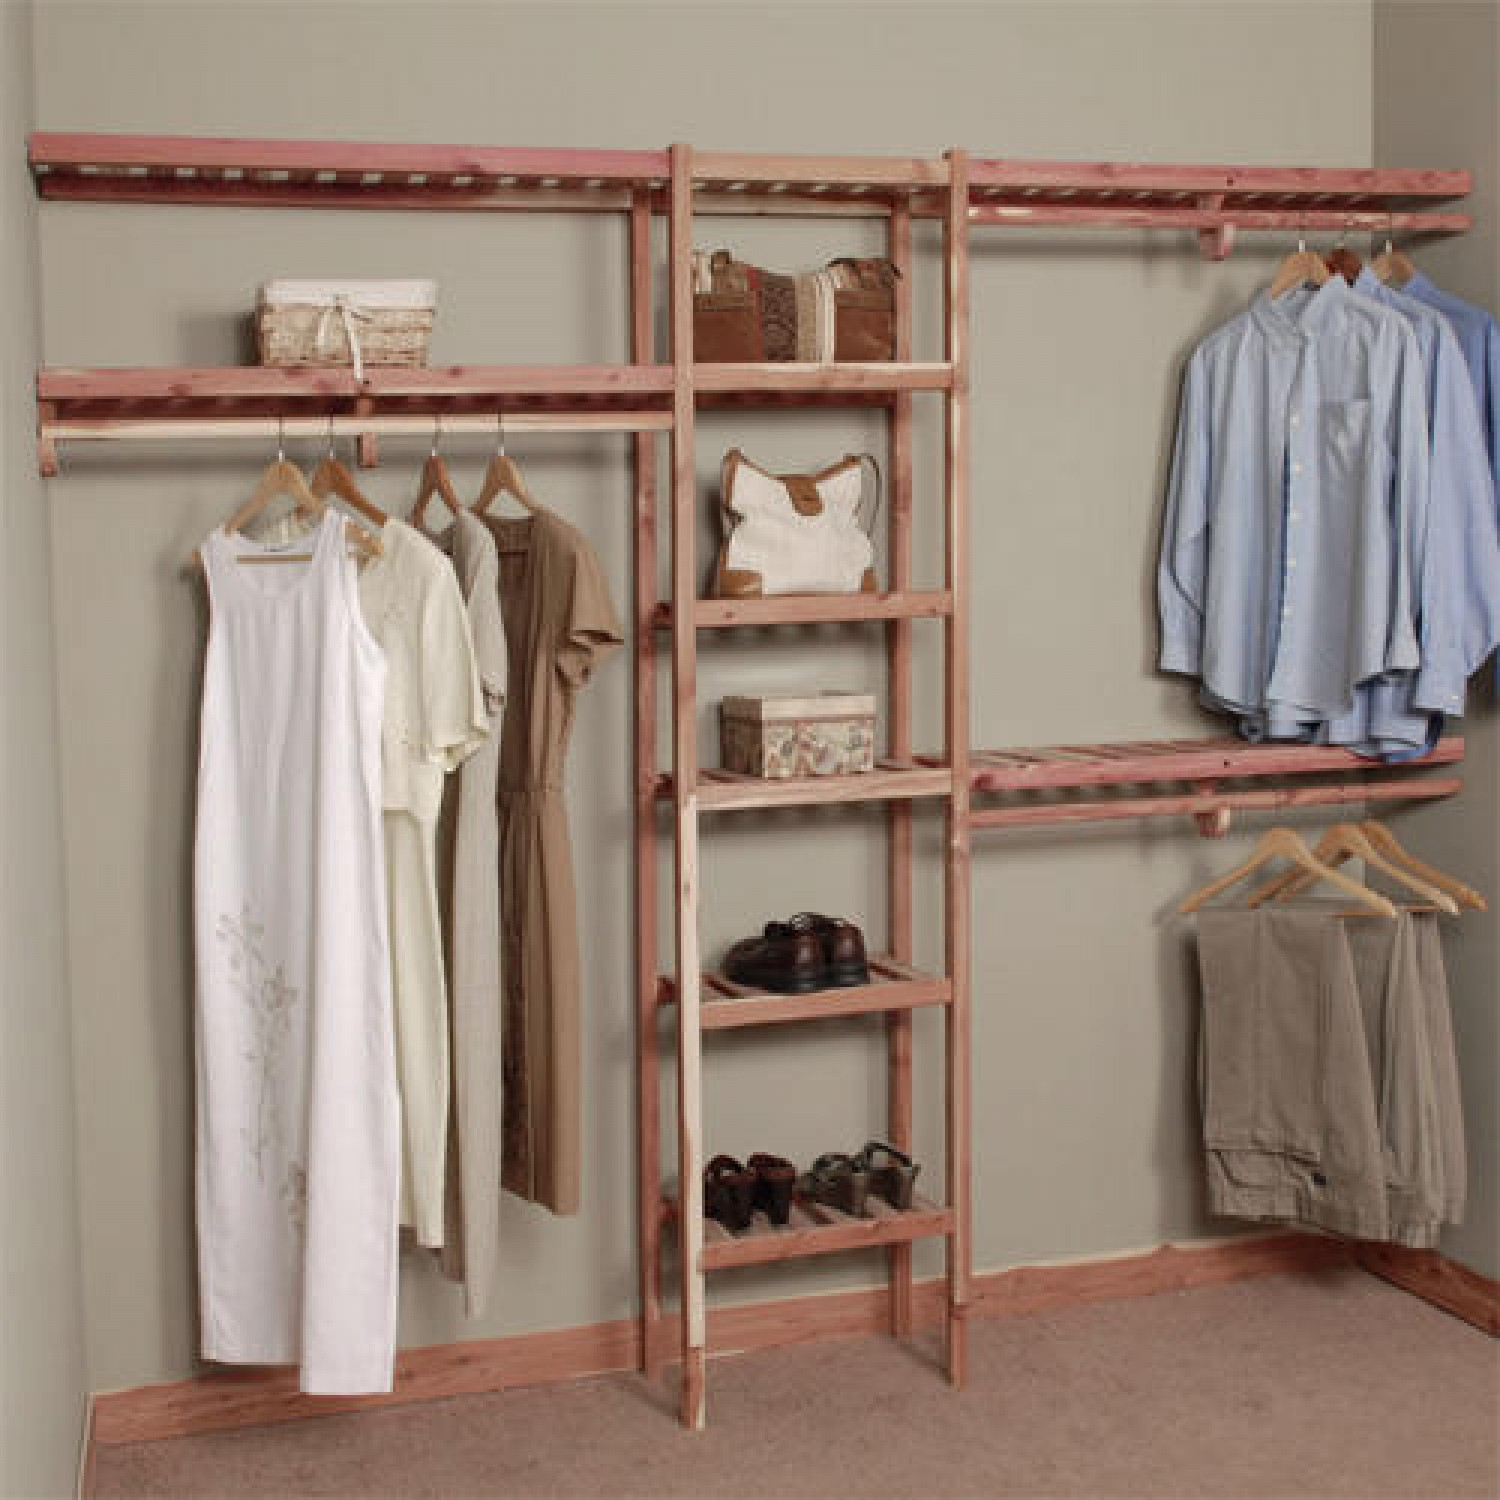 Inspiring Storage System Design Ideas with Cedar Closet Kit: Cedar Closet Kit | Cedar Planks Home Depot | Aromatic Cedar Boards